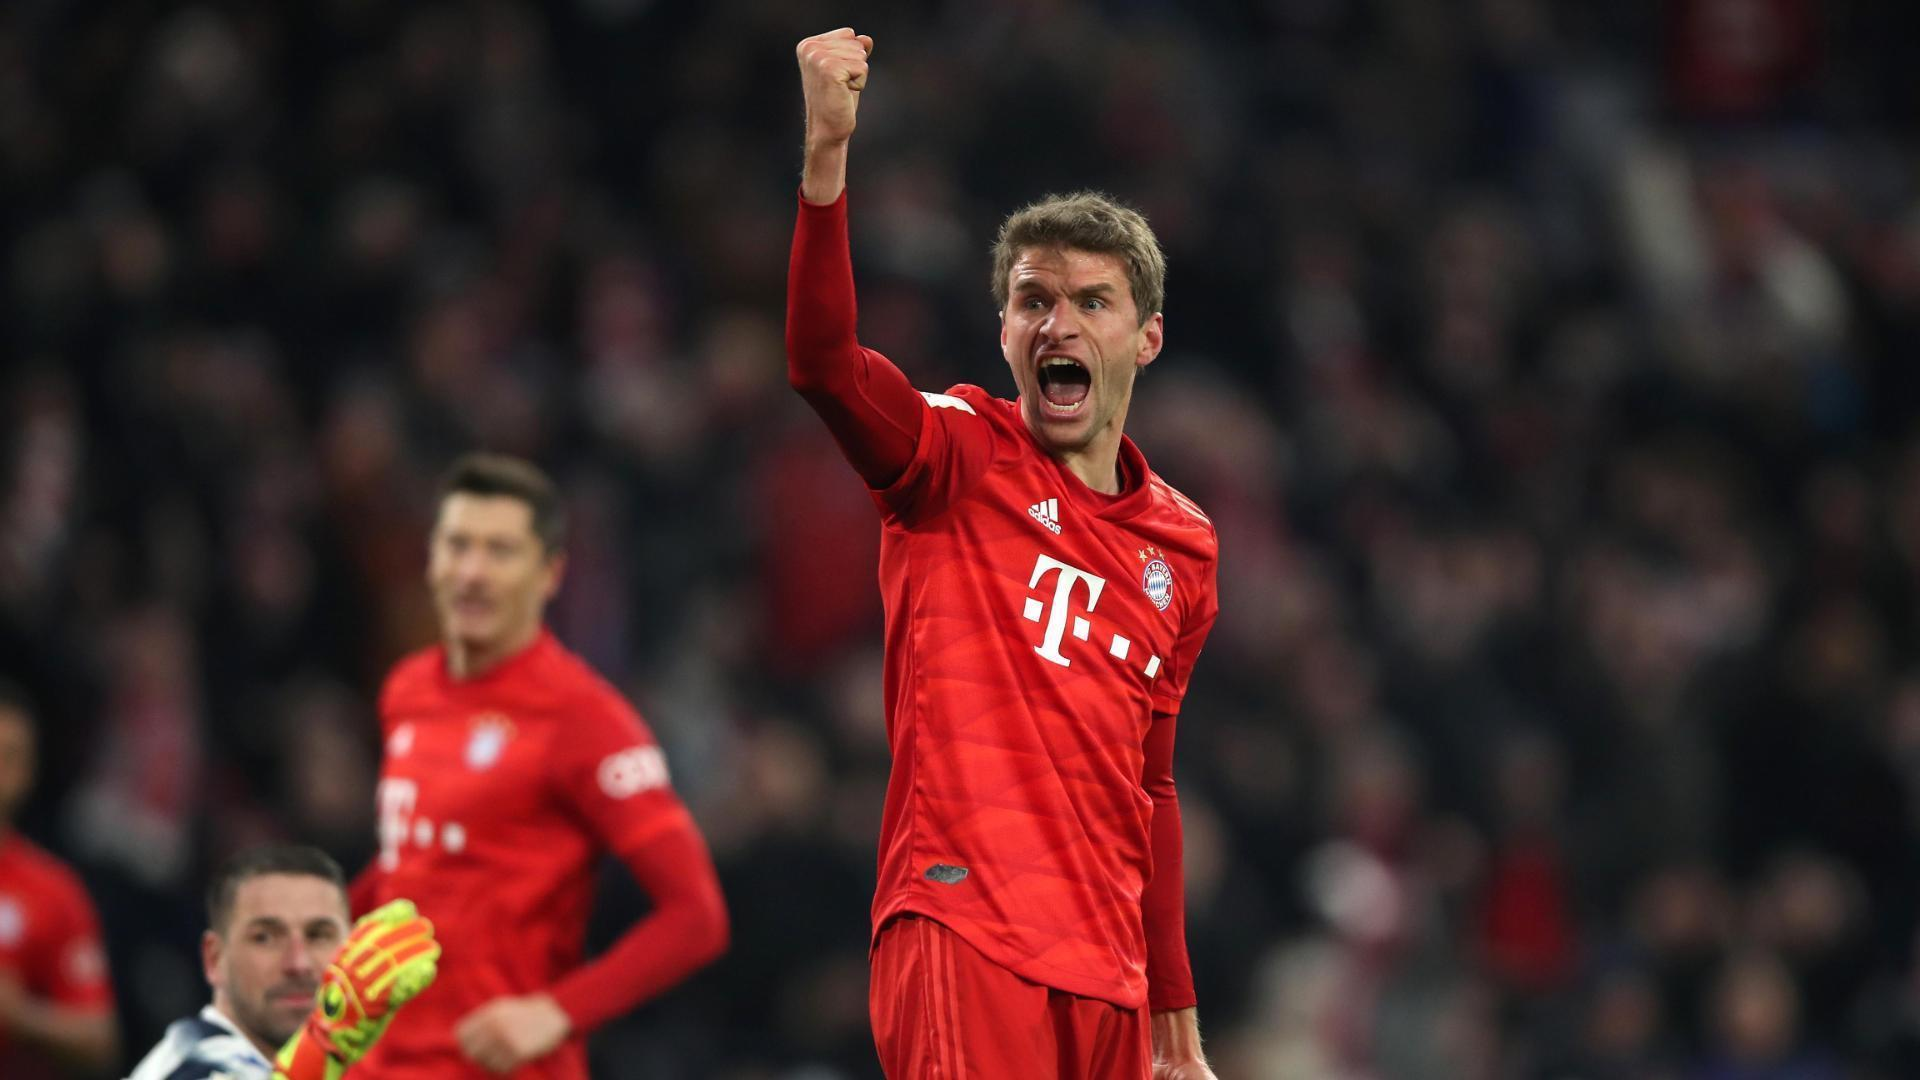 Thomas Muller adds Bayern Munich's second goal